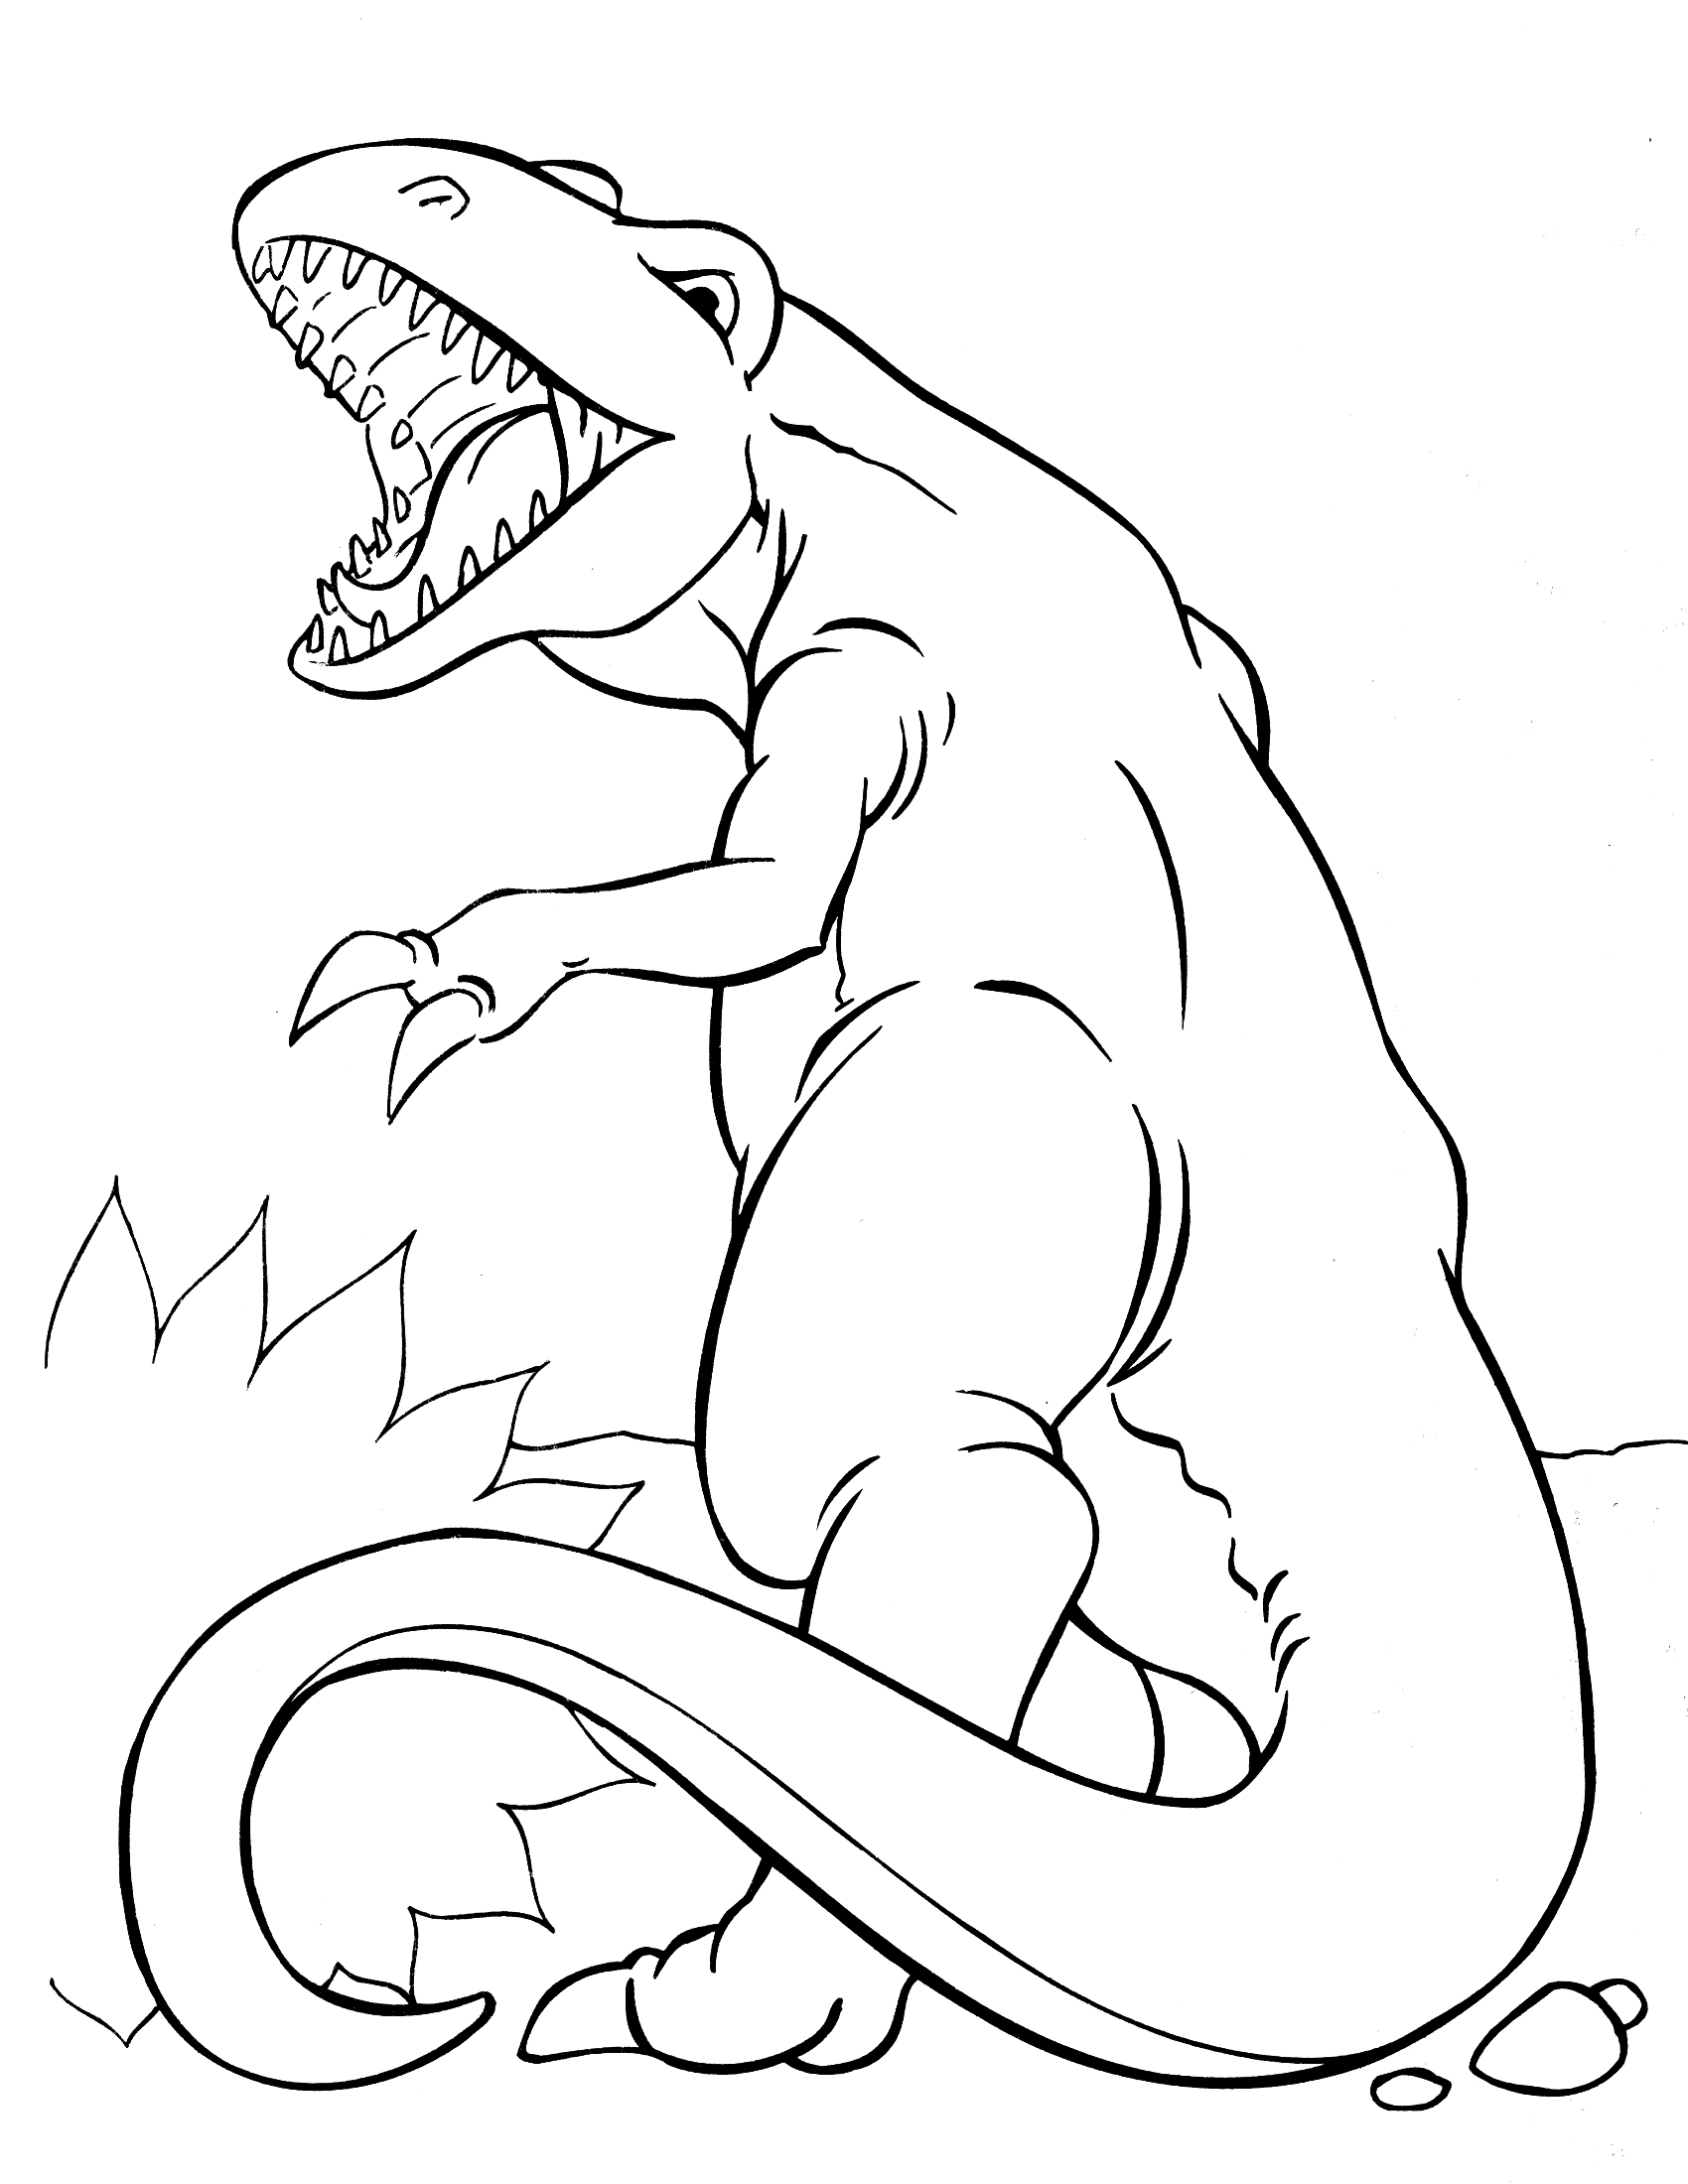 dinosaur fight coloring pages - photo#18